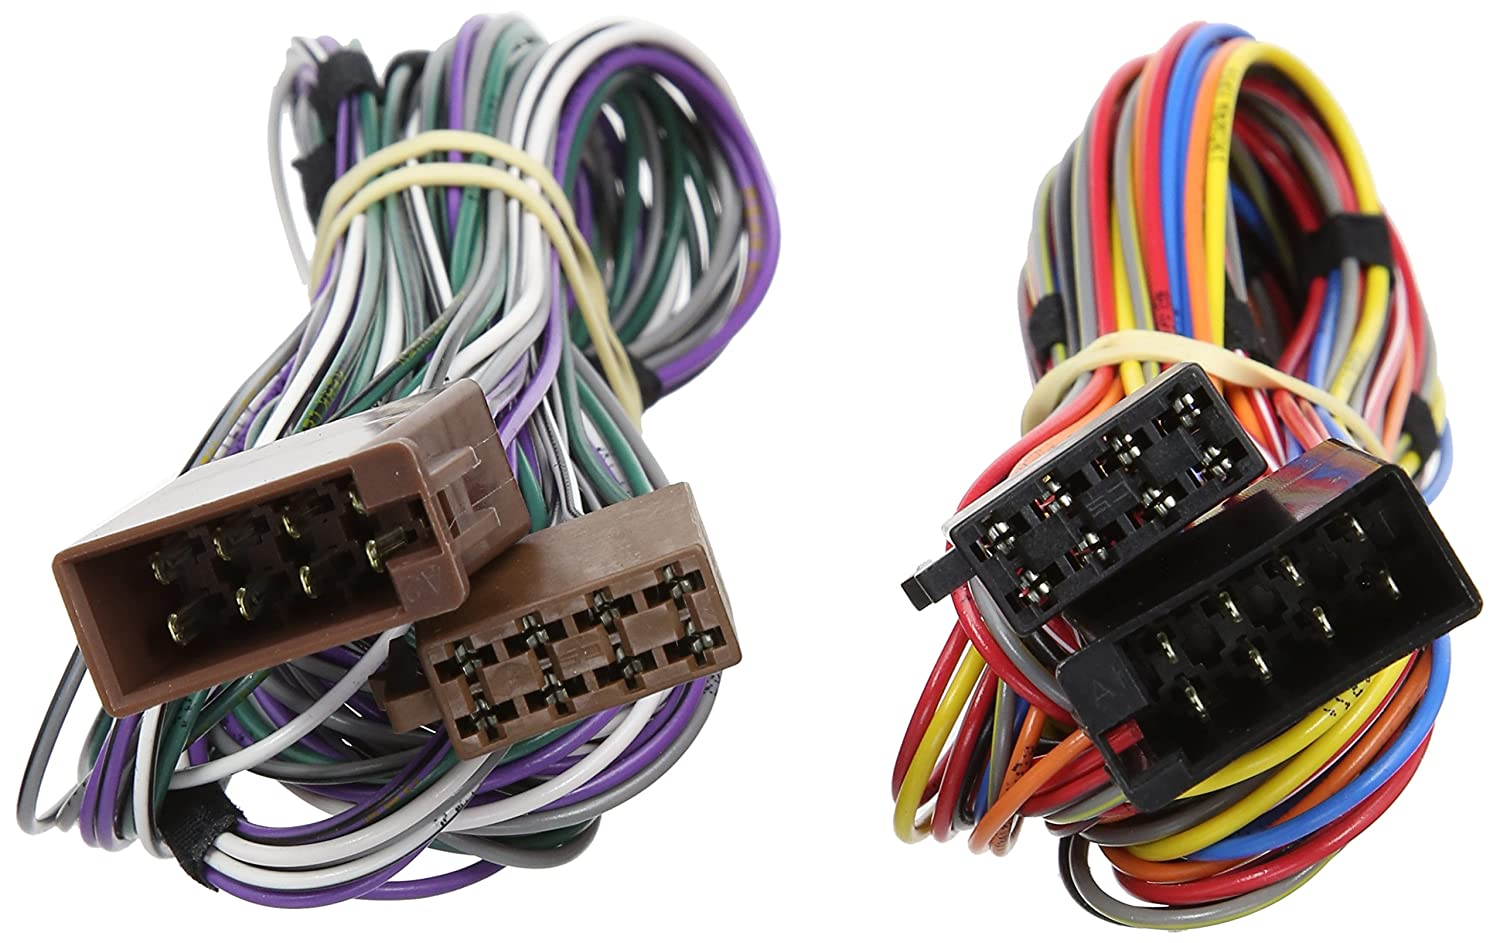 autoleads pc2-101-4 car audio harness adaptor lead 2 5m iso extension:  amazon co uk: car & motorbike